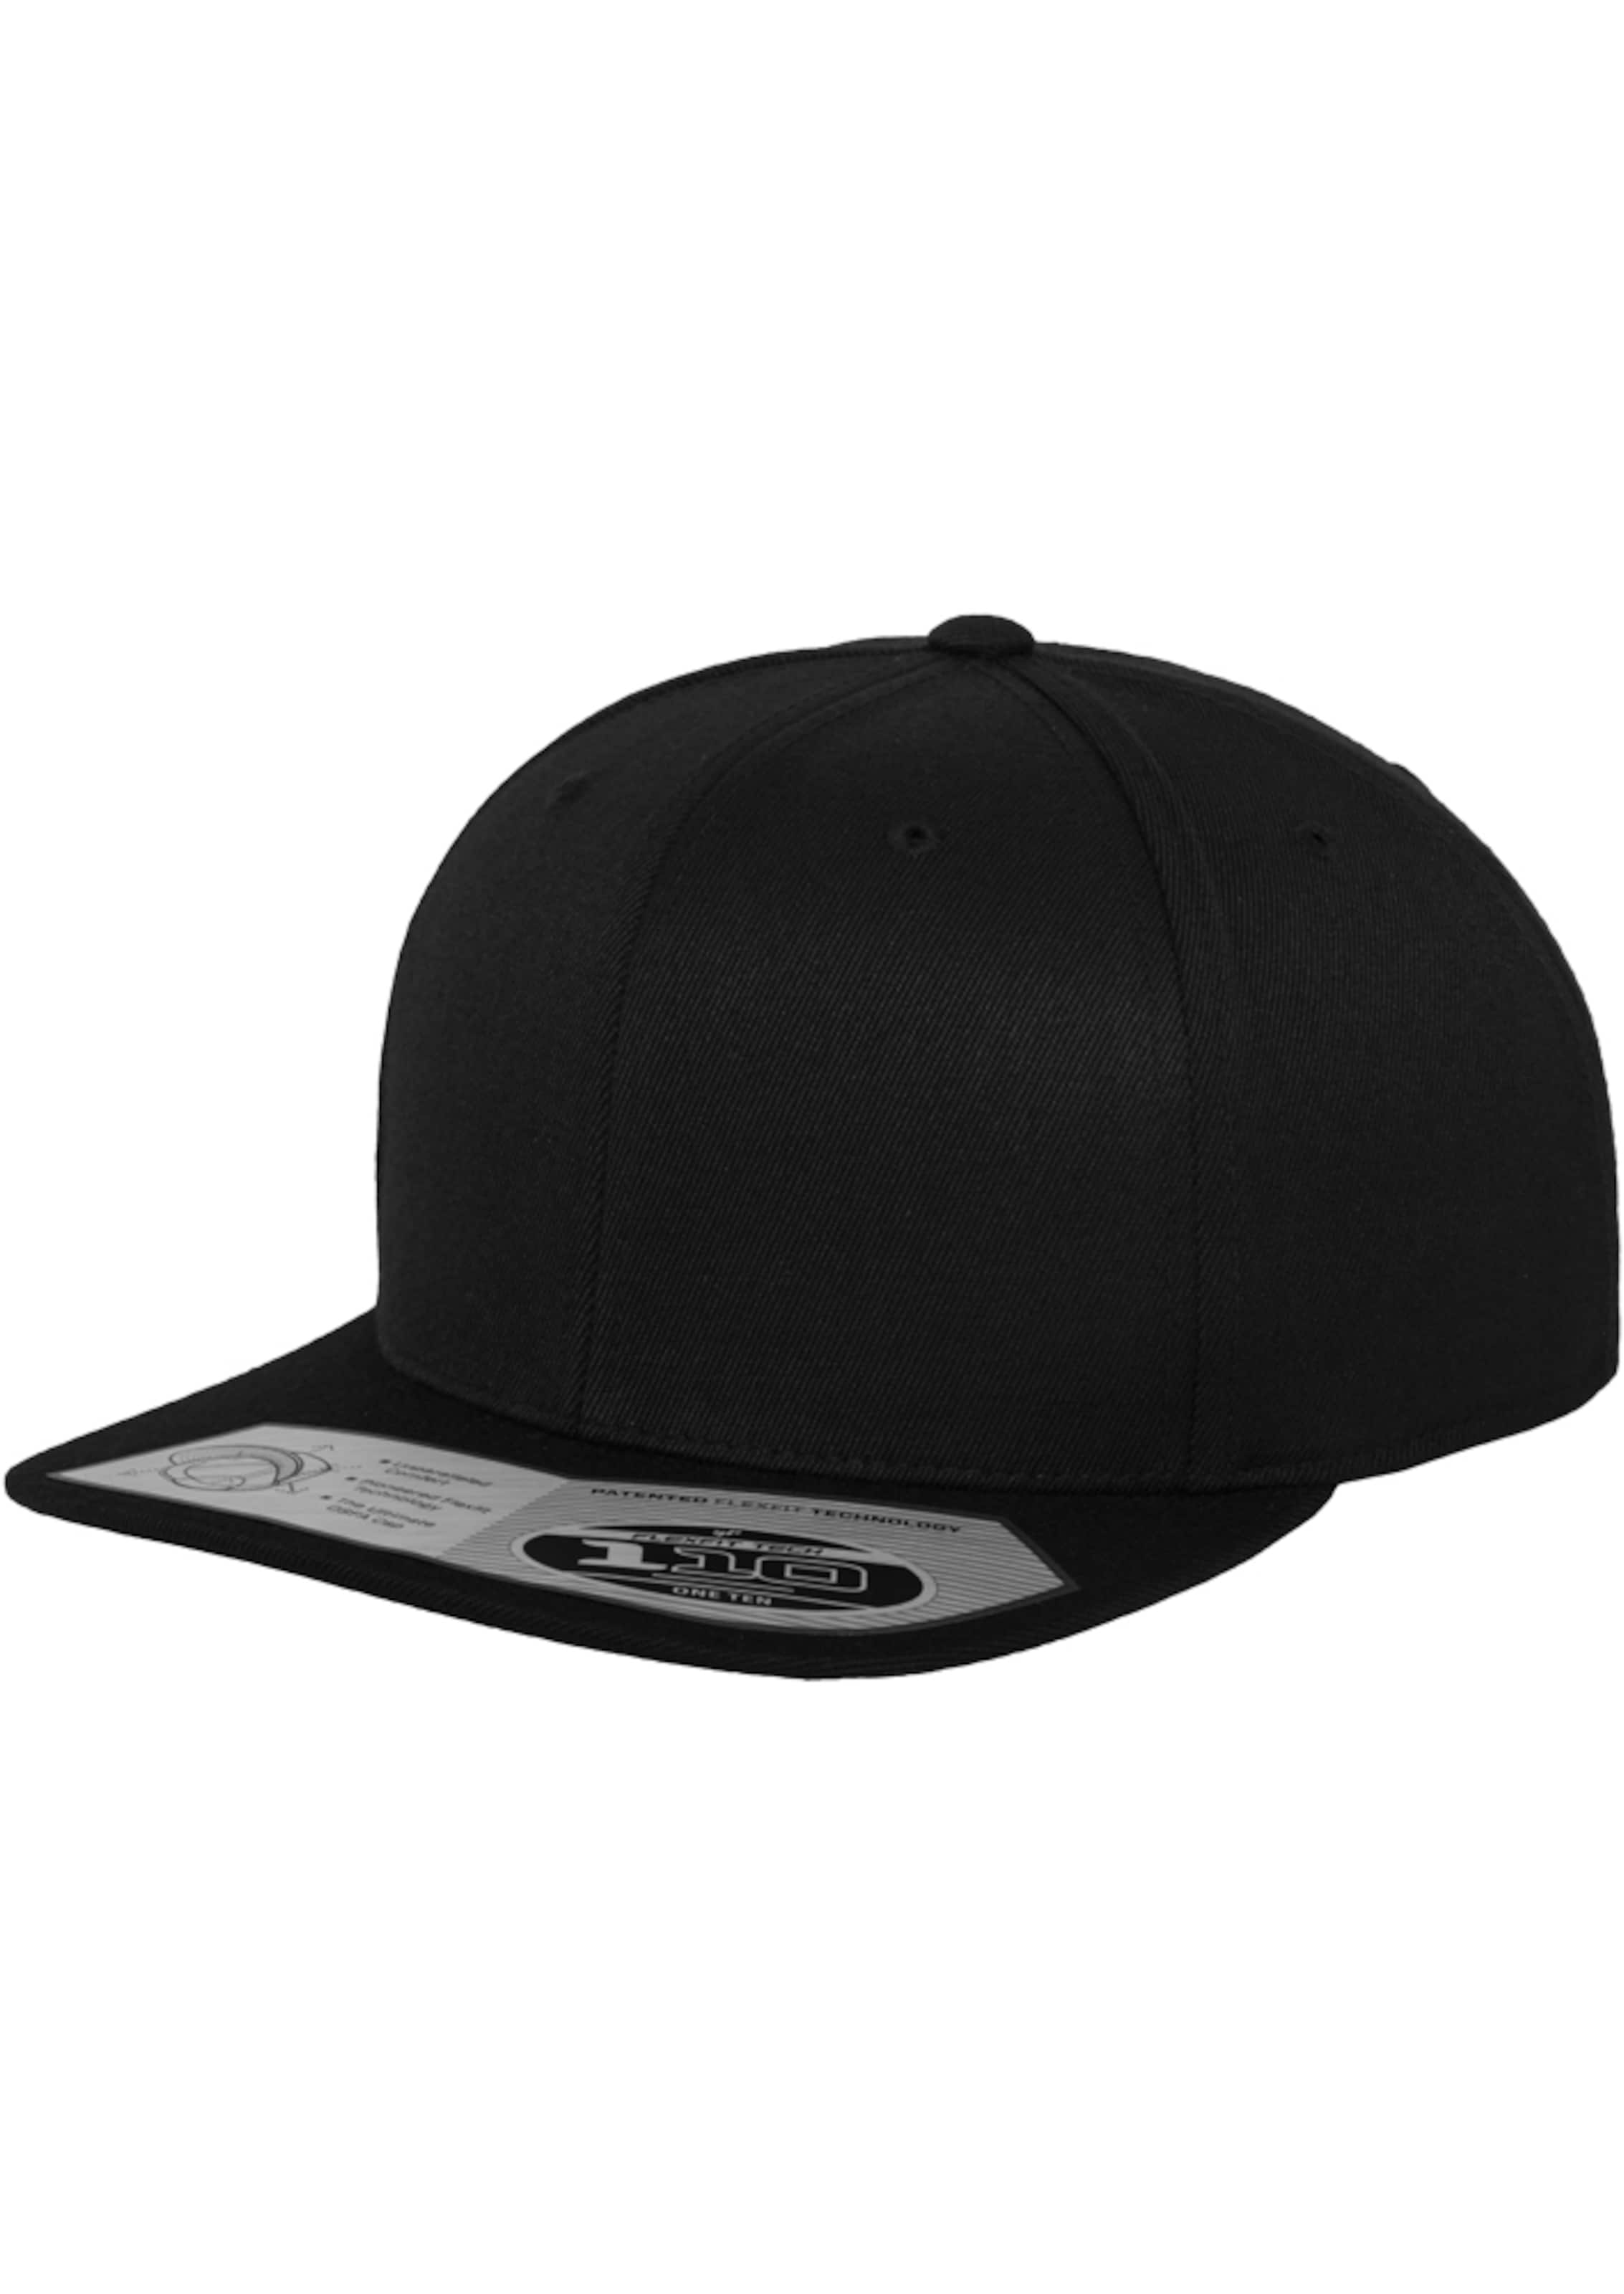 Flexfit '110 In Snapback Fitted' Weinrot 4A5RjL